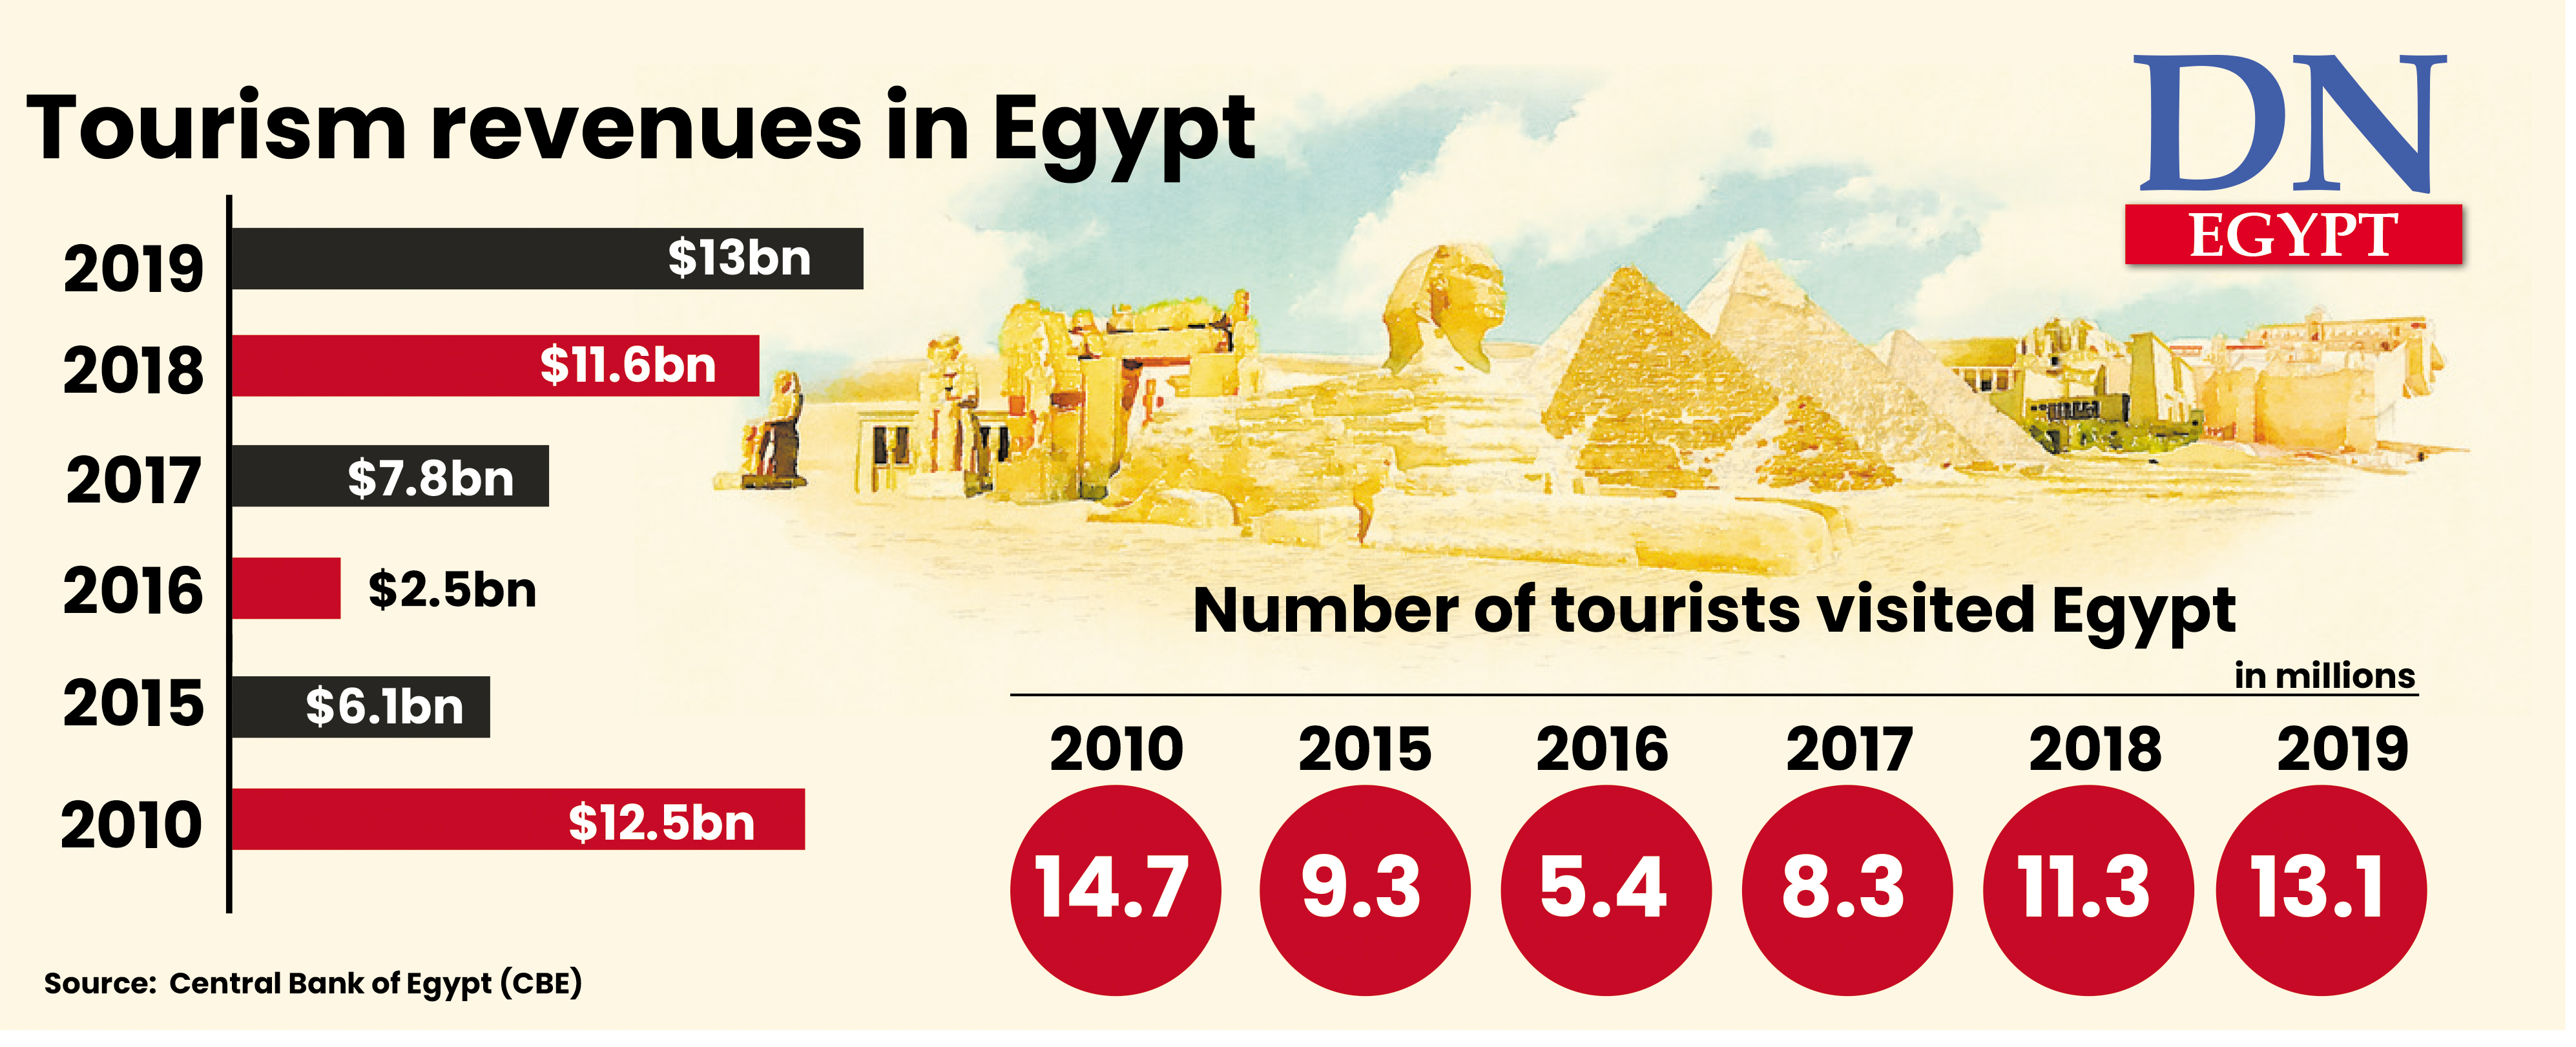 Egypt S 2019 Tourism Revenues Hit 13bn Highest In History Daily News Egypt